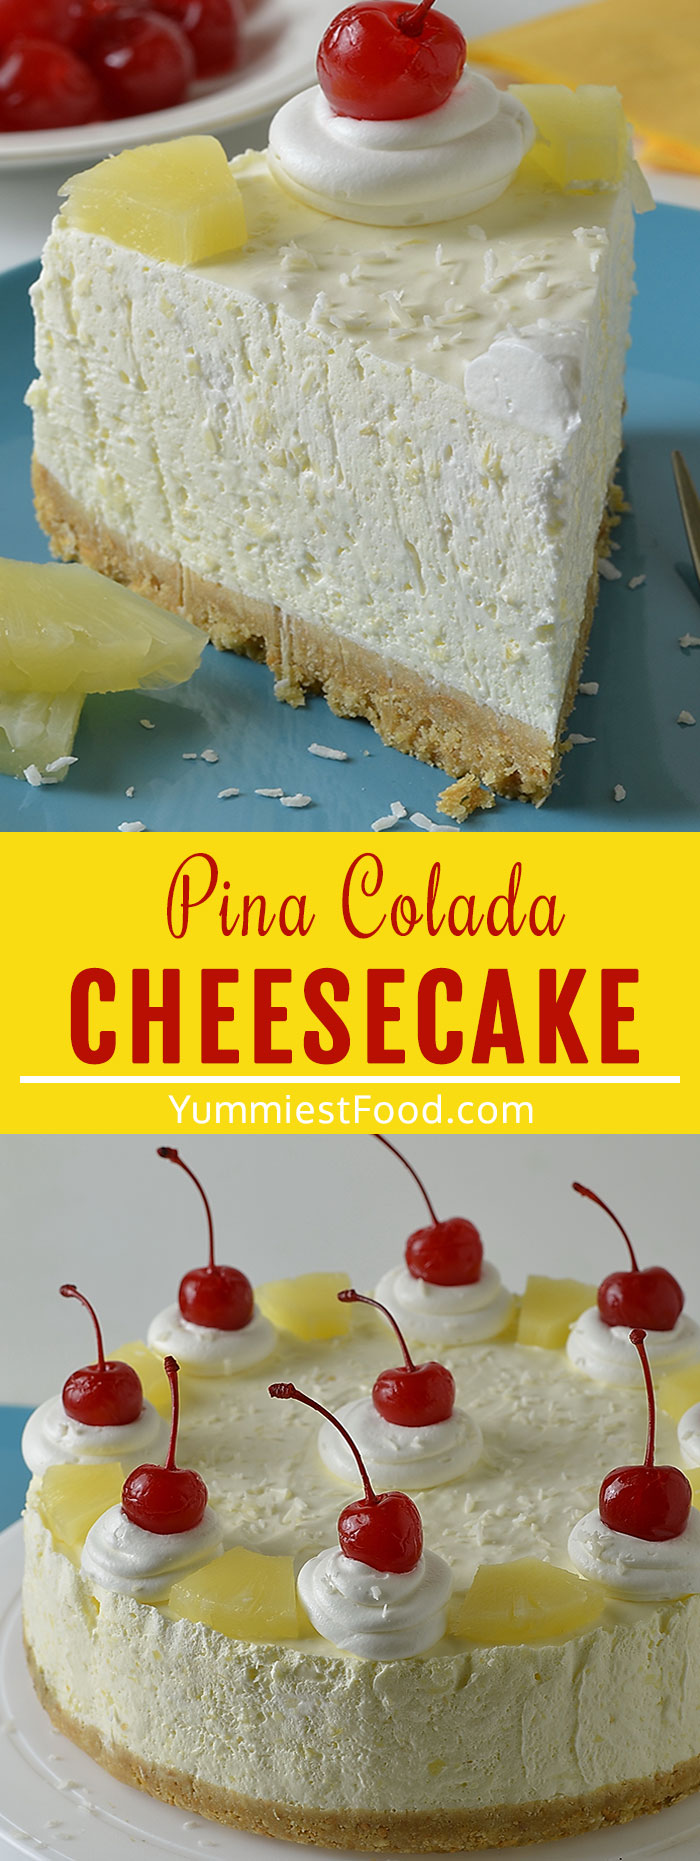 Piña Colada Cheesecake is a quick and easy dessert recipe for a refreshing summer sweet treat! Pineapple, coconut, and rum all the flavors of your favorite tropical cocktail in a delicious dessert form! #desserts #dessertrecipes #easyrecipes #cheesecakerecipes #cheesecake